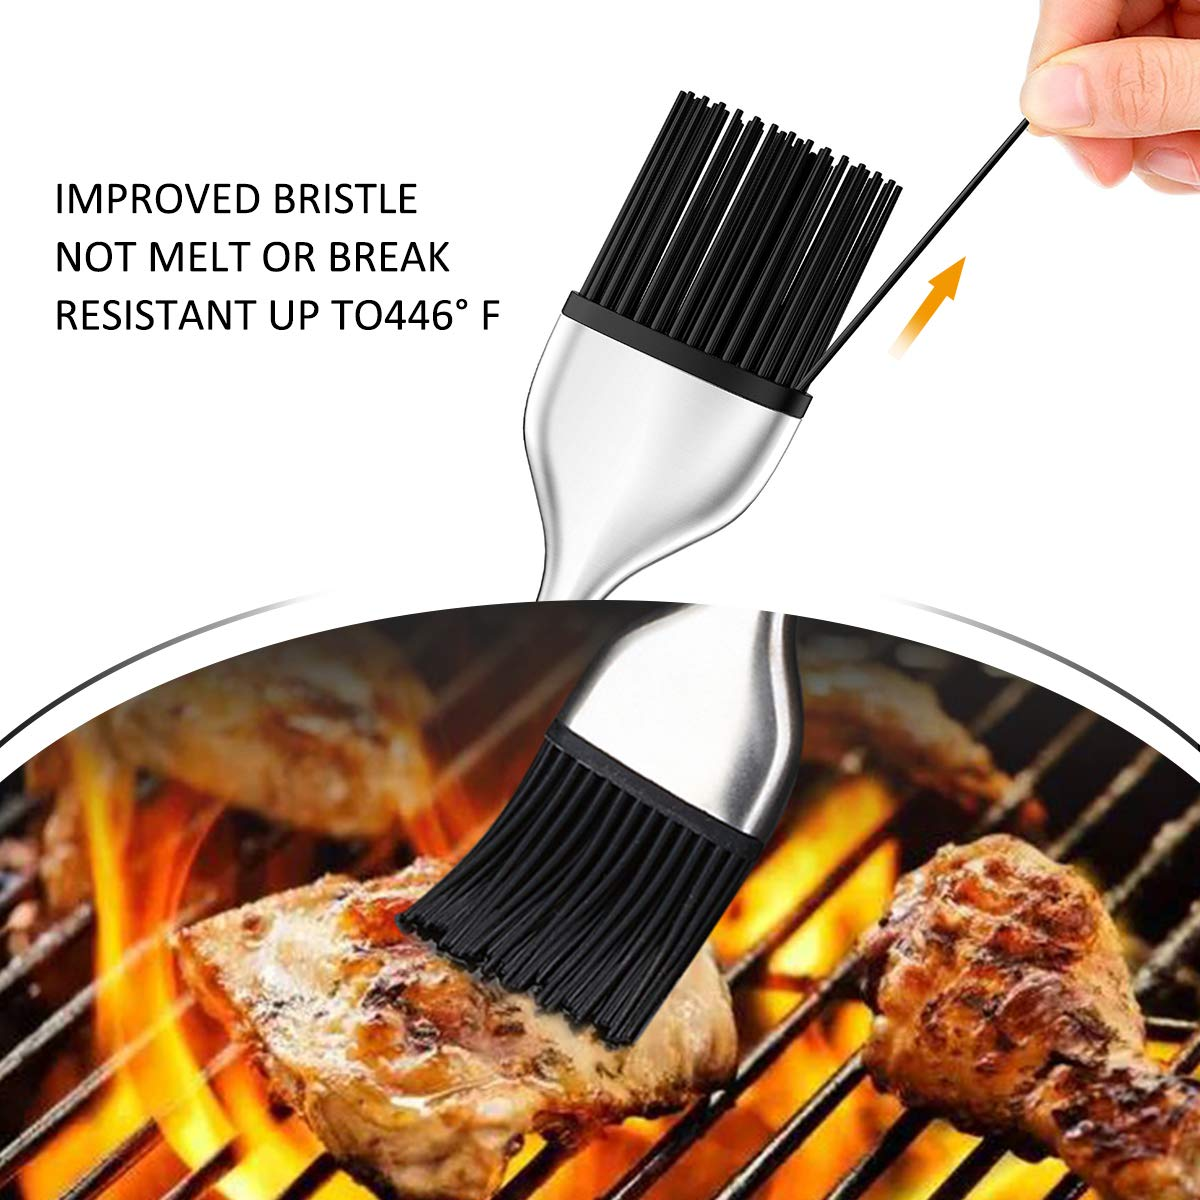 Hcomine Set of 5 Basting Brush, Pastry Silicone/Grill/BBQ/Sauce/Butter/Oil Brush with Flexible Heatproof Stainless Steel Handle 12'' and 7.9'',Food Grade FDA Approved, Dishwasher Safe, Bristle Free. by Hcomine (Image #4)